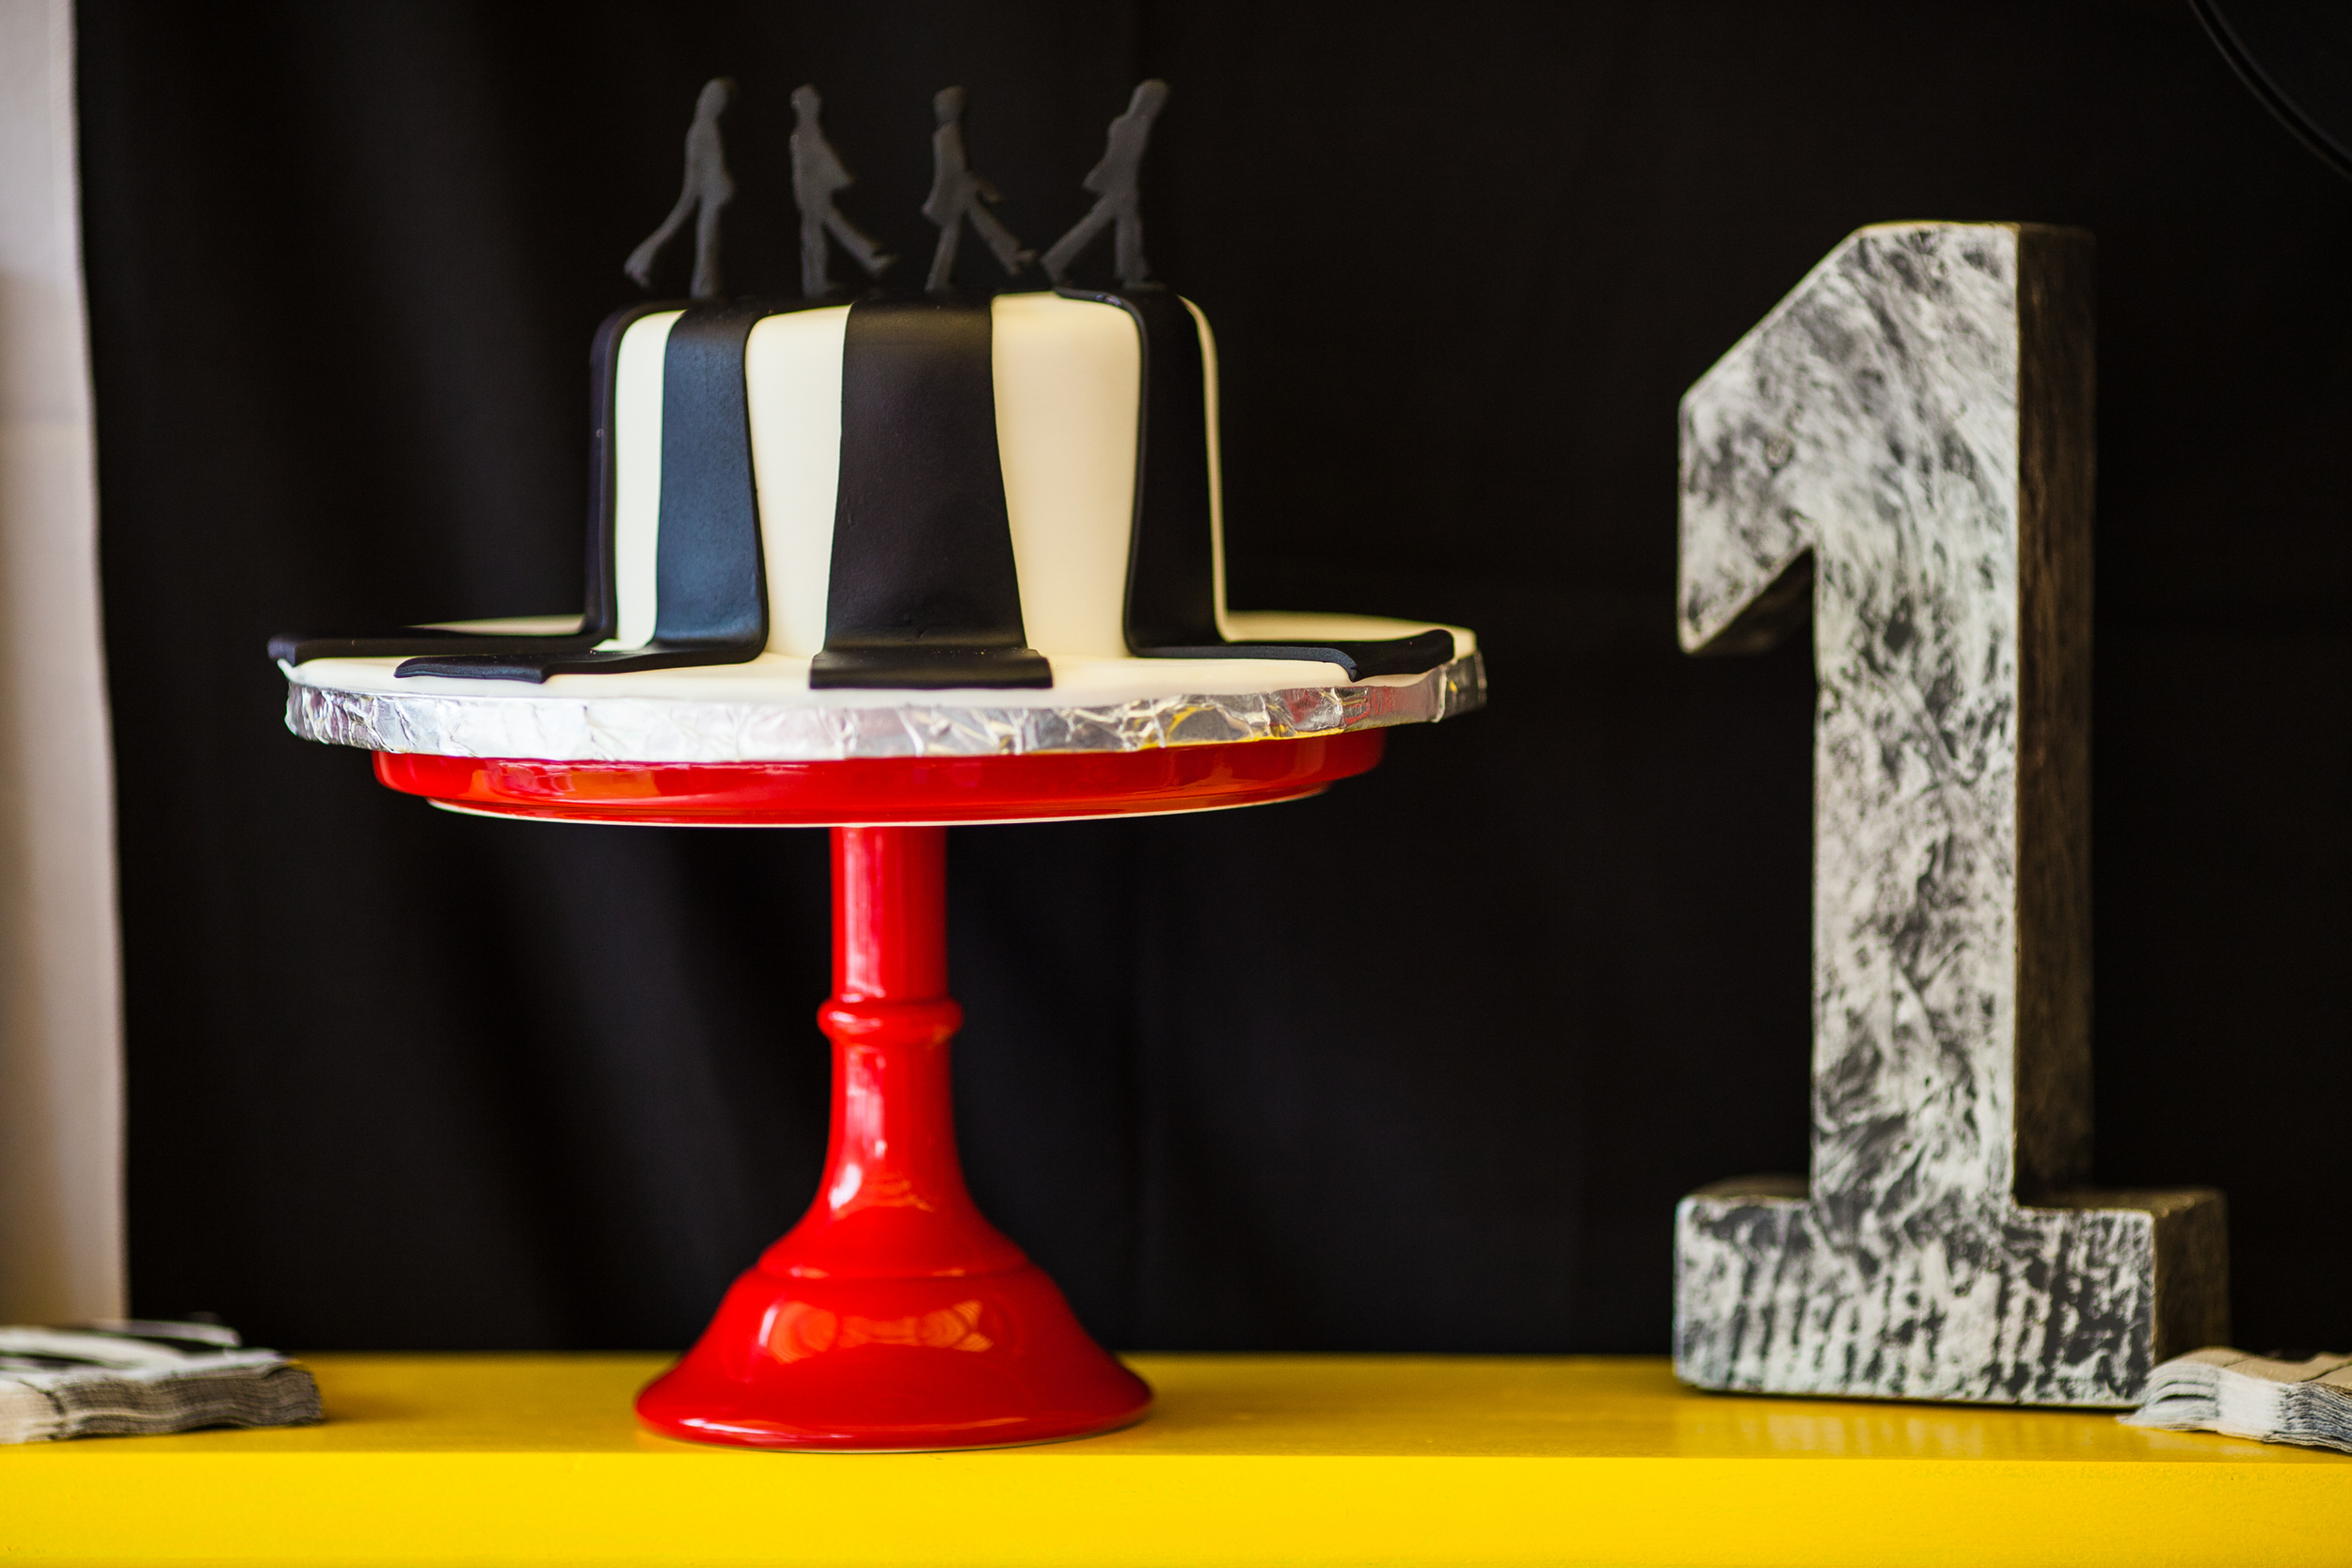 Cake by  Singer Sister Sweets . The number one and cake stand were purchased from Home Goods.